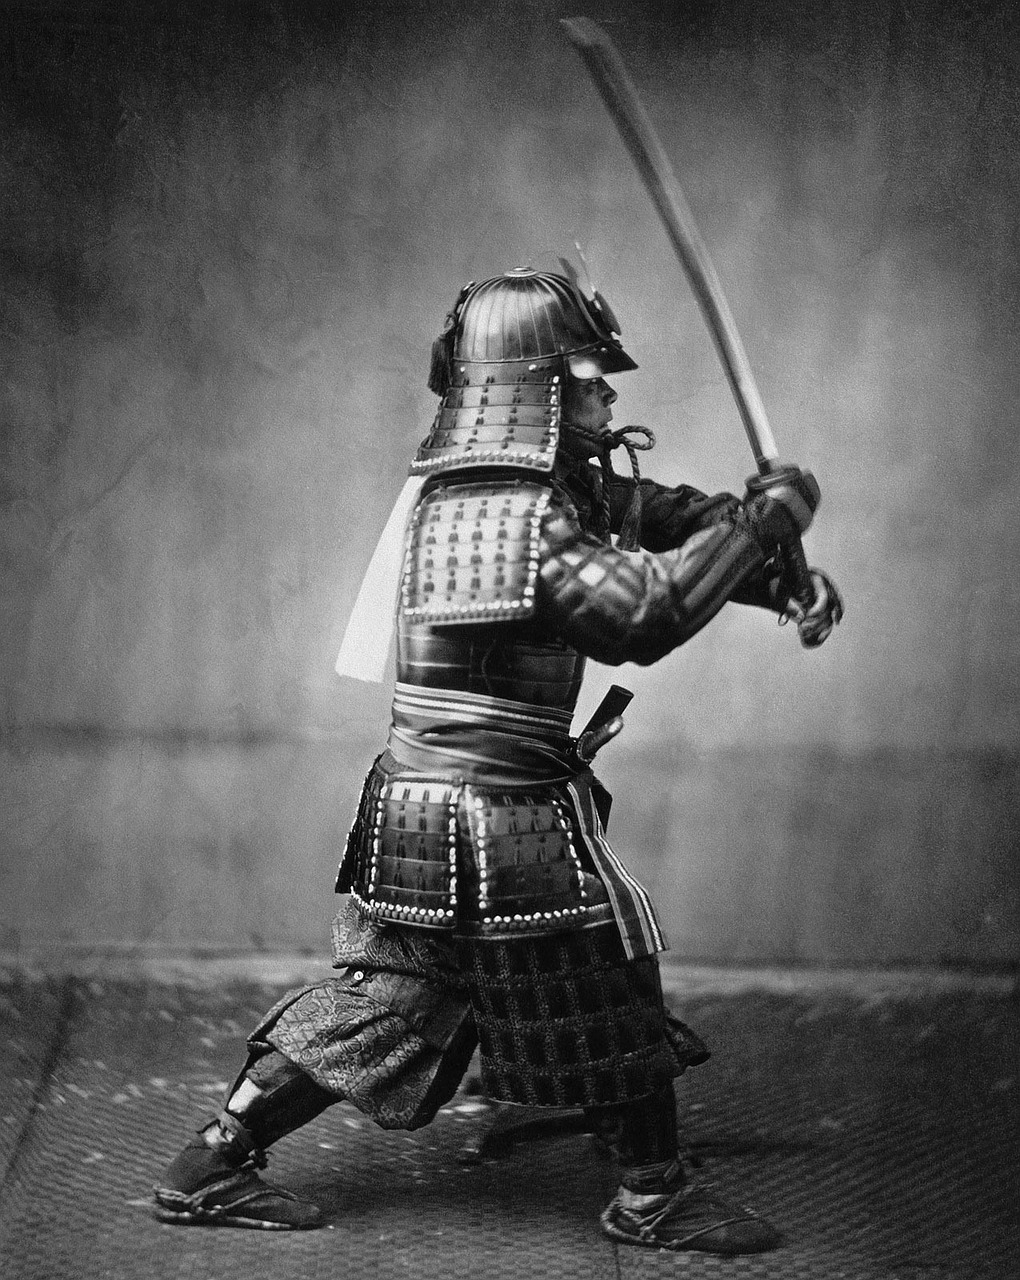 Bujinkan History and Information - Click the Image to learn more…